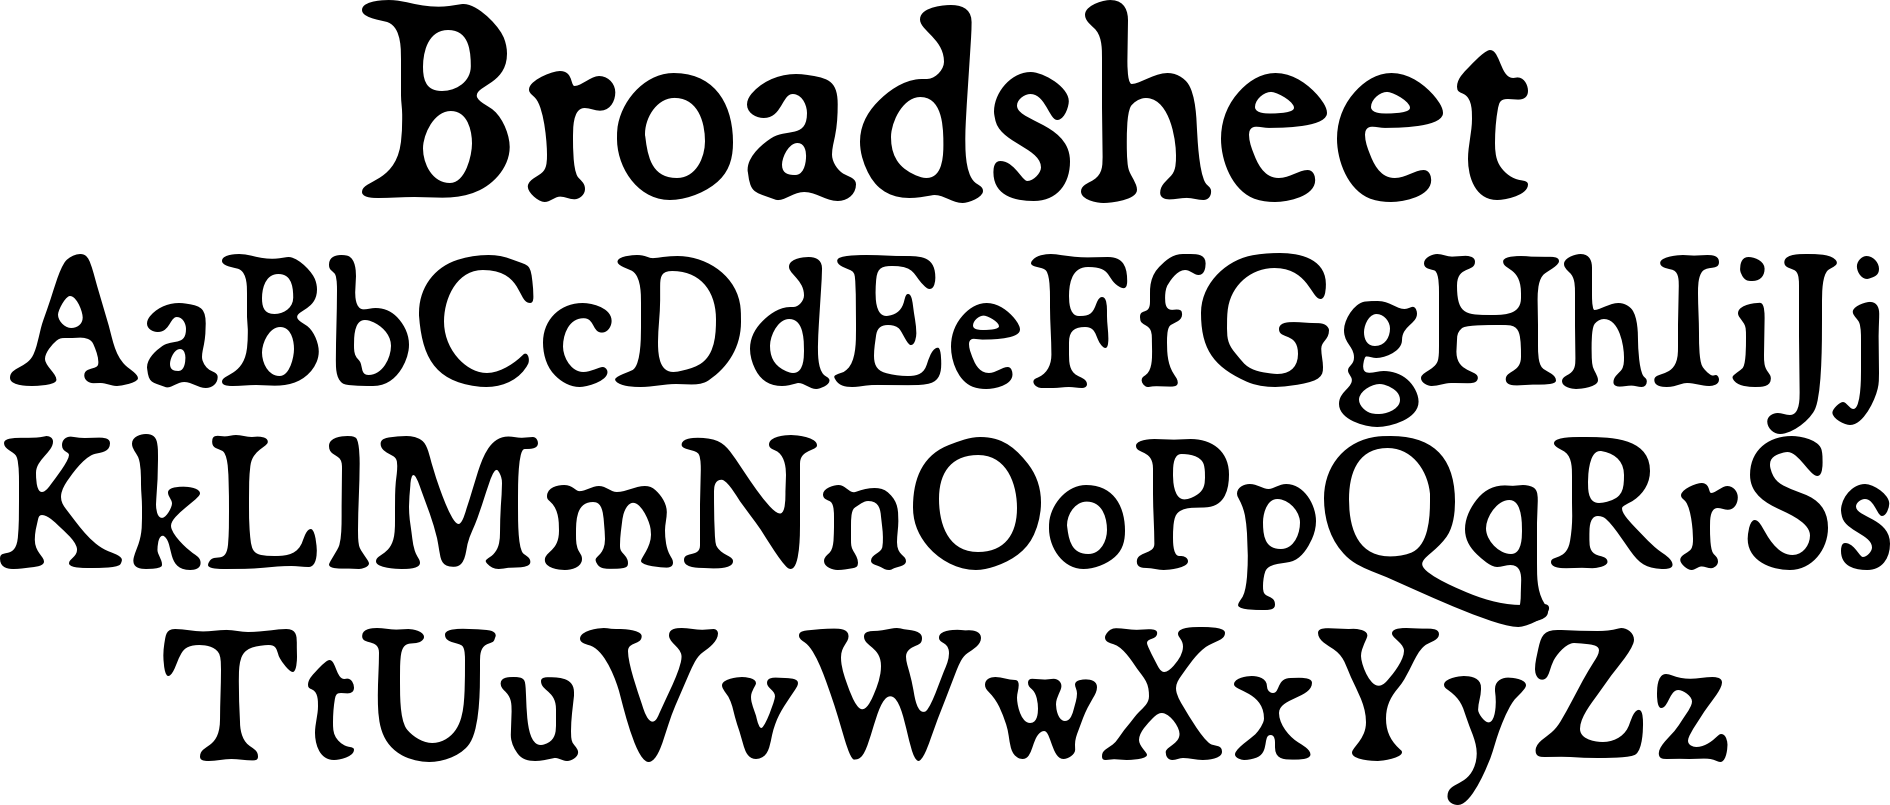 Broadsheet Font Based On Antique Publications From 1728 And 1776 Broadsheet Is A Full Featured Typeface That Simulates Old Historical Fonts Fonts Lettering